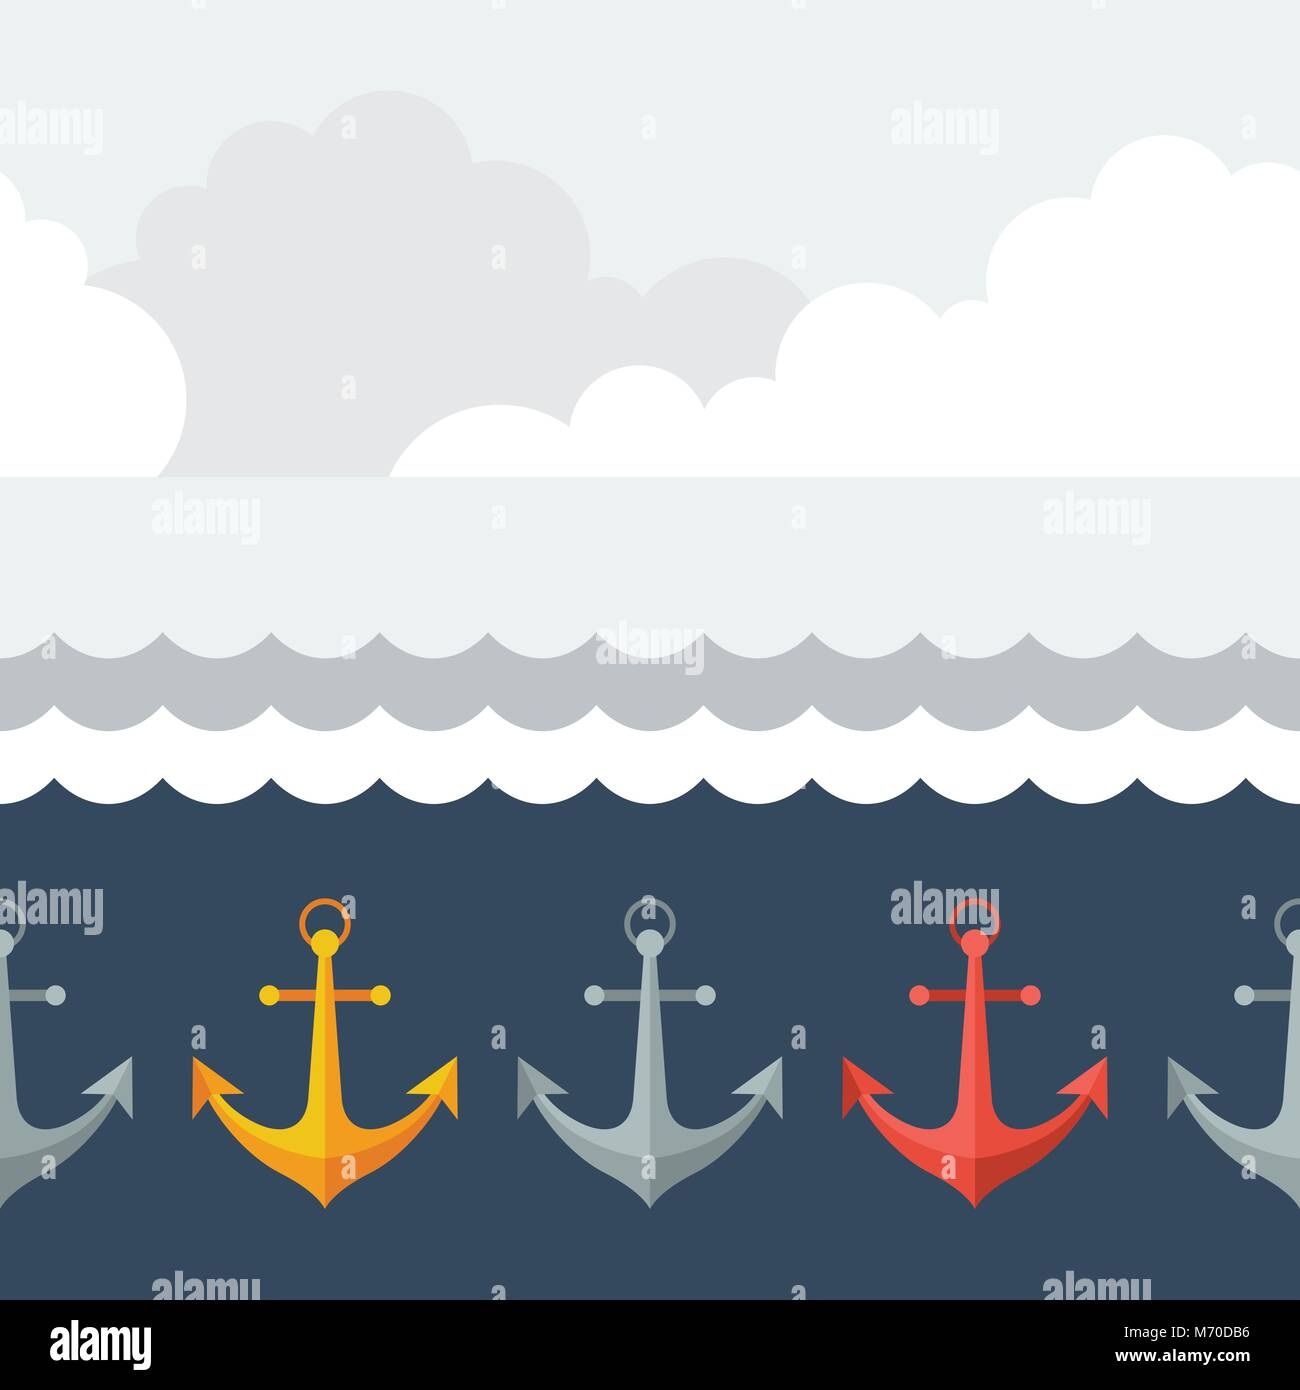 Nautical seamless pattern with anchors in flat design style - Stock Image